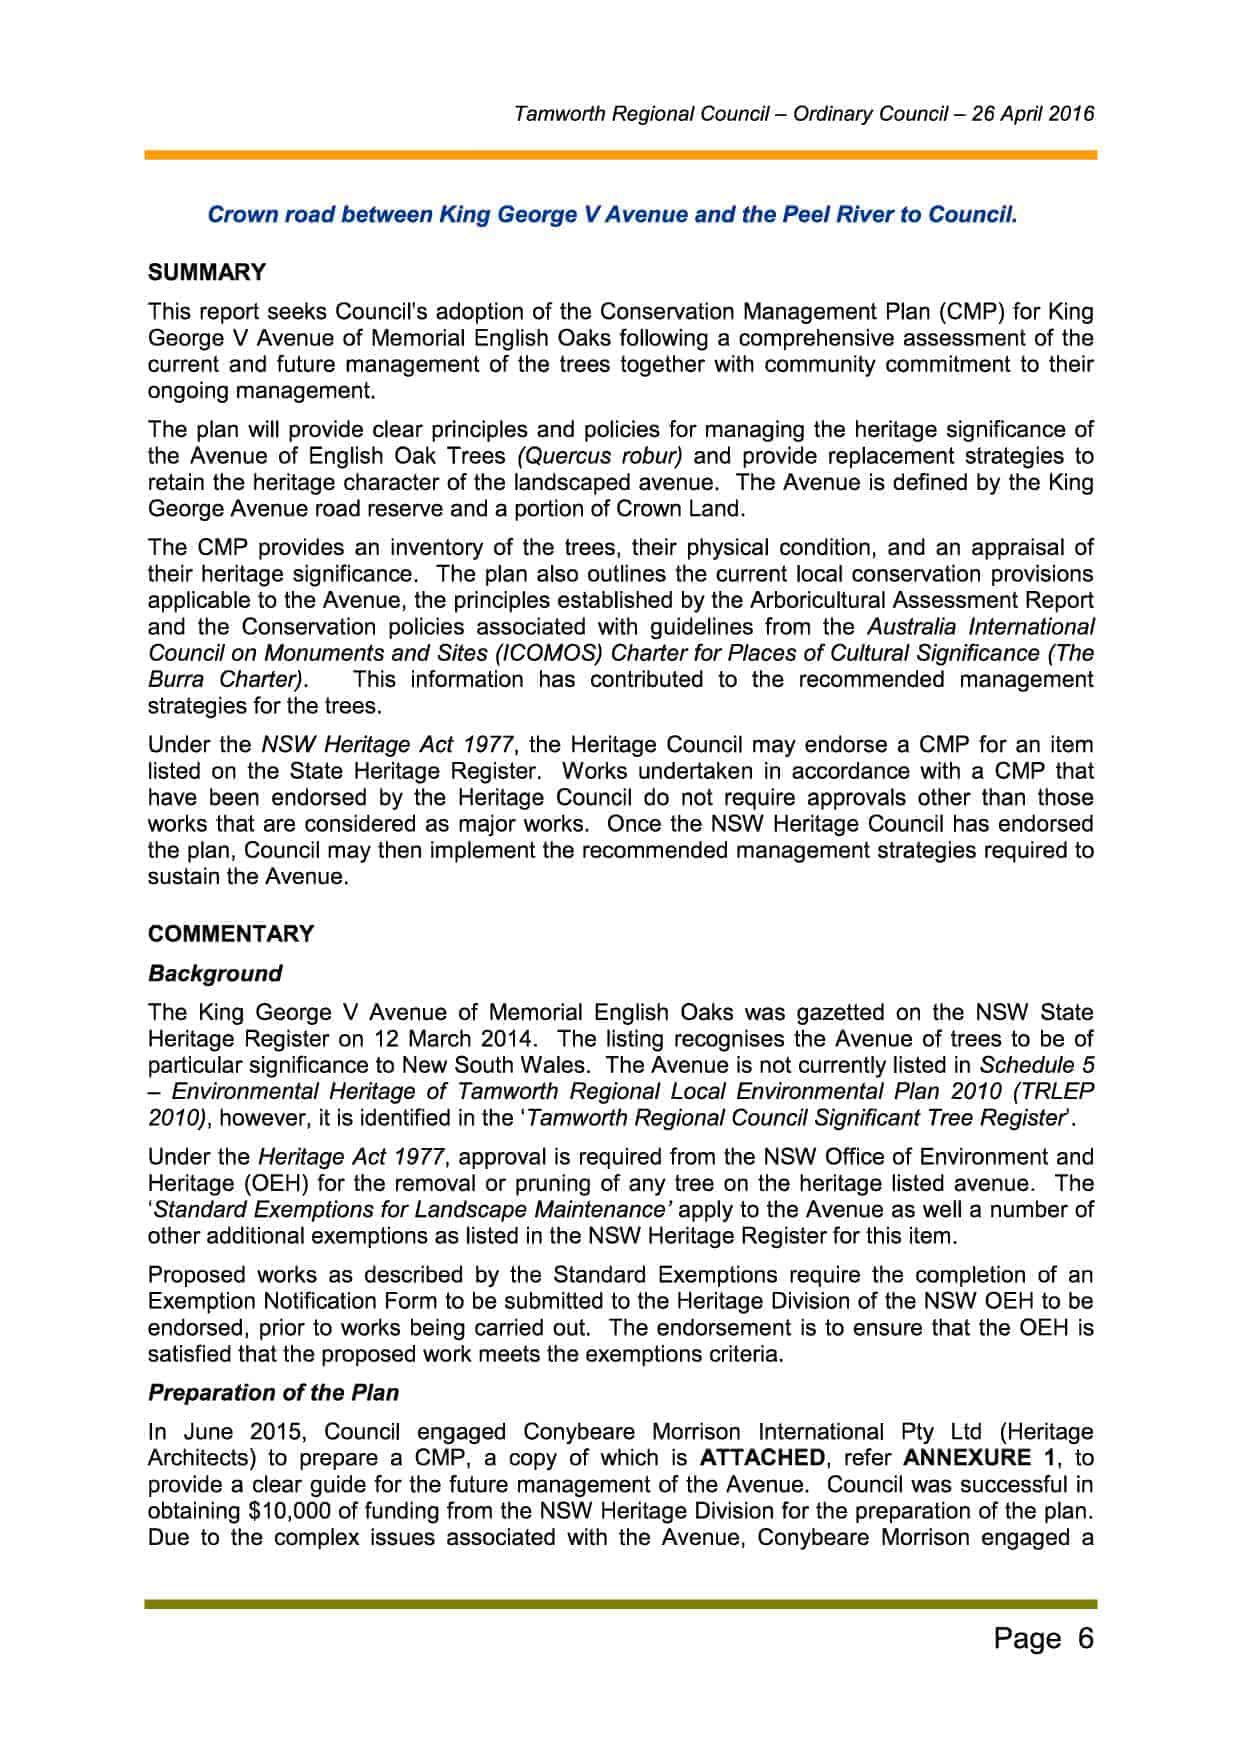 Business Paper - Ordinary Council Meeting 26 April 2016 v2 (1)2